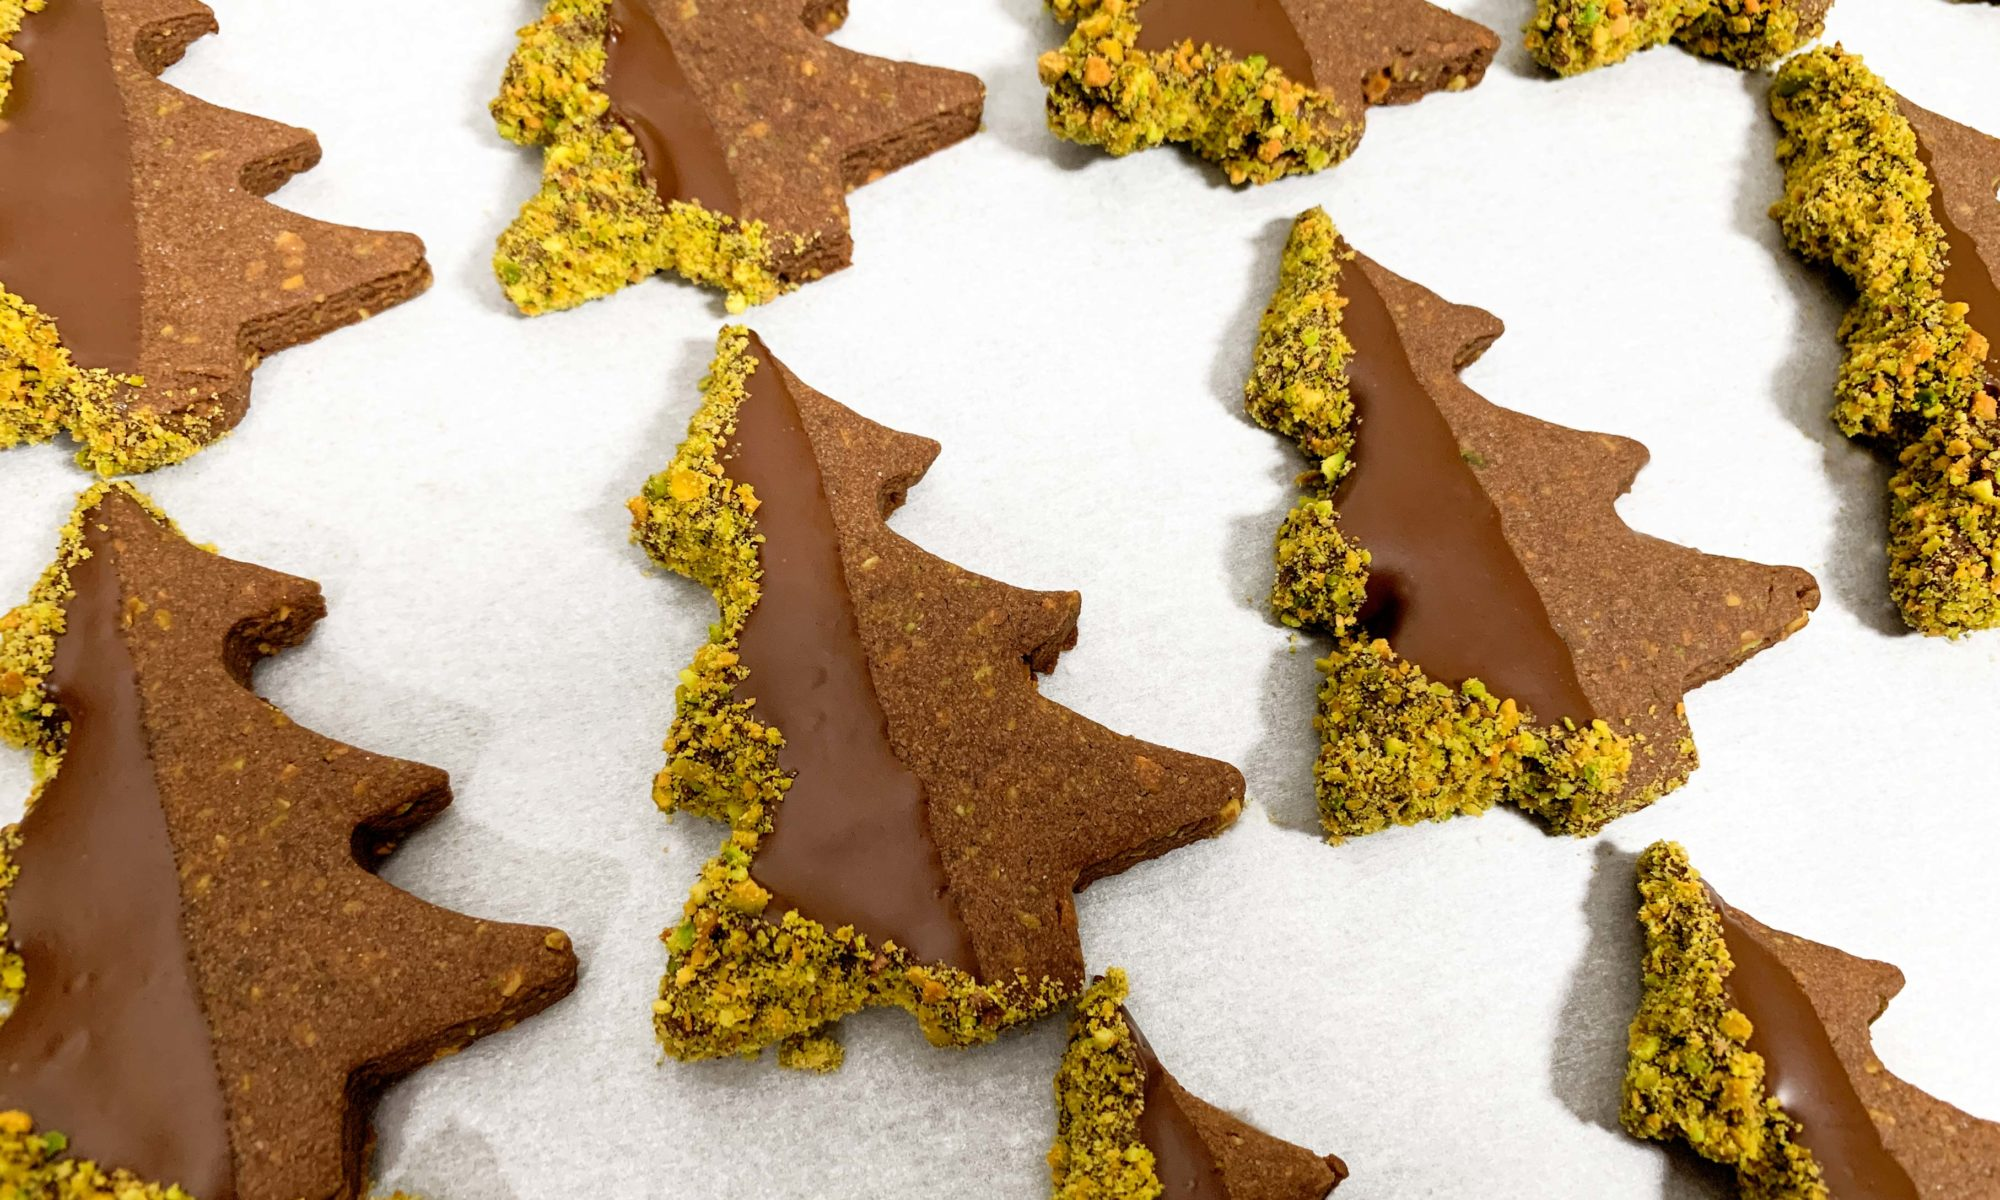 Tray of finished cookies, dipped in chocolate with pistachios crusted on the edges